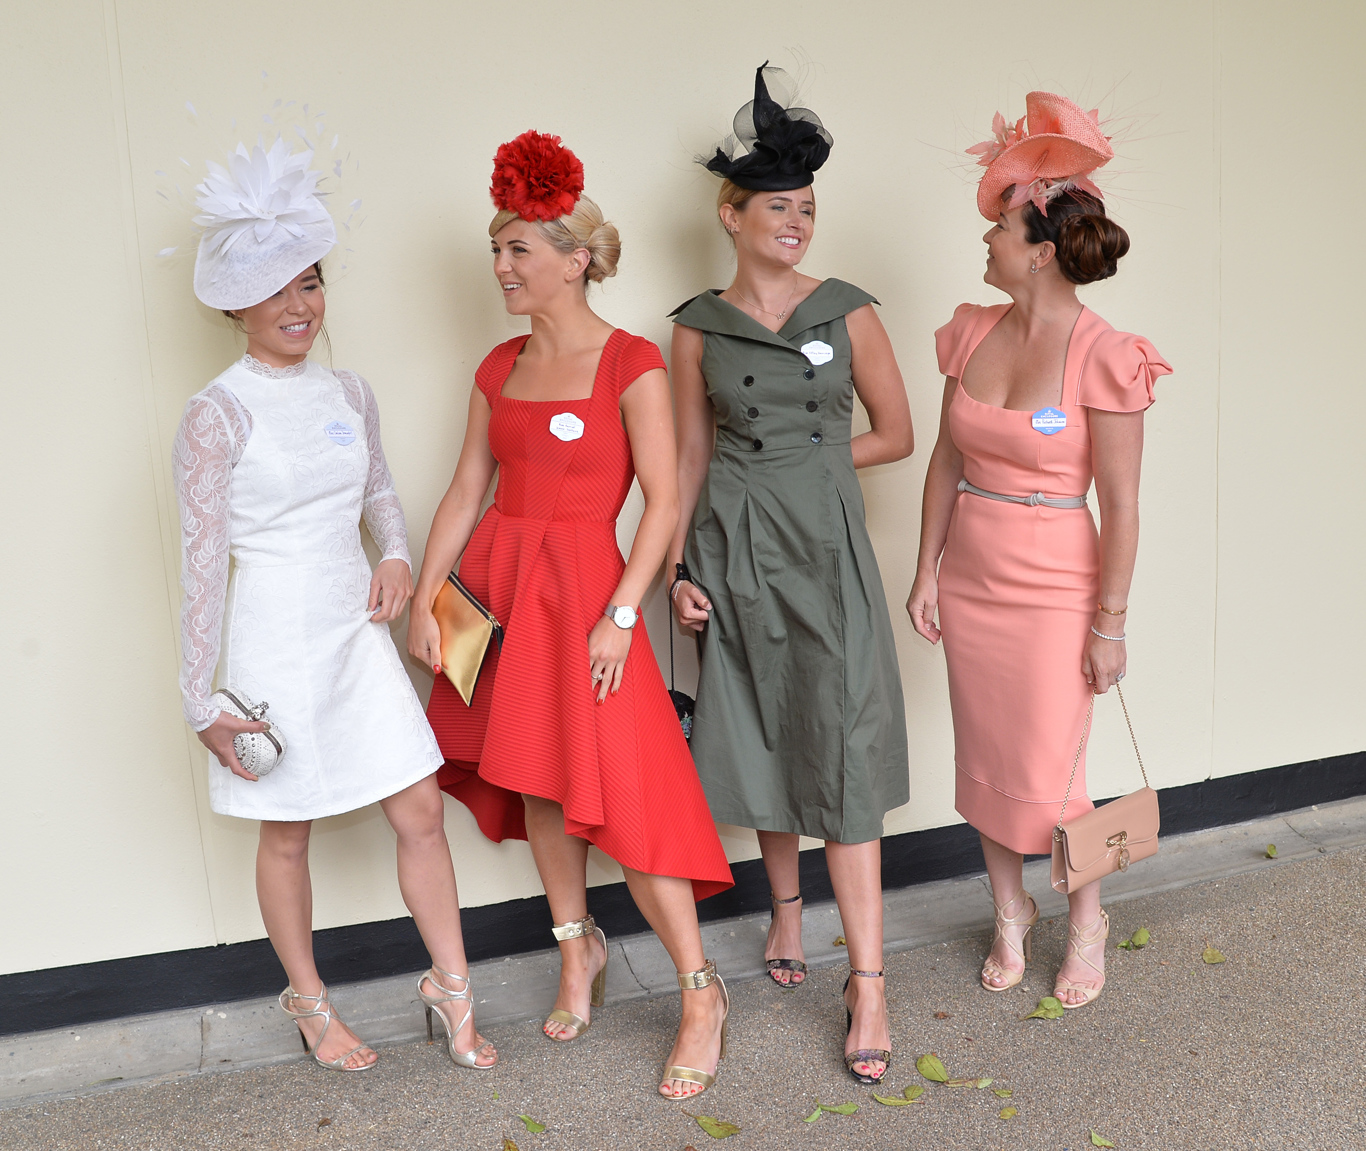 Racegoers enjoy themselves.Royal Ascot 2017, Day Four, at Ascot Racecourse on Friday 23rd June.